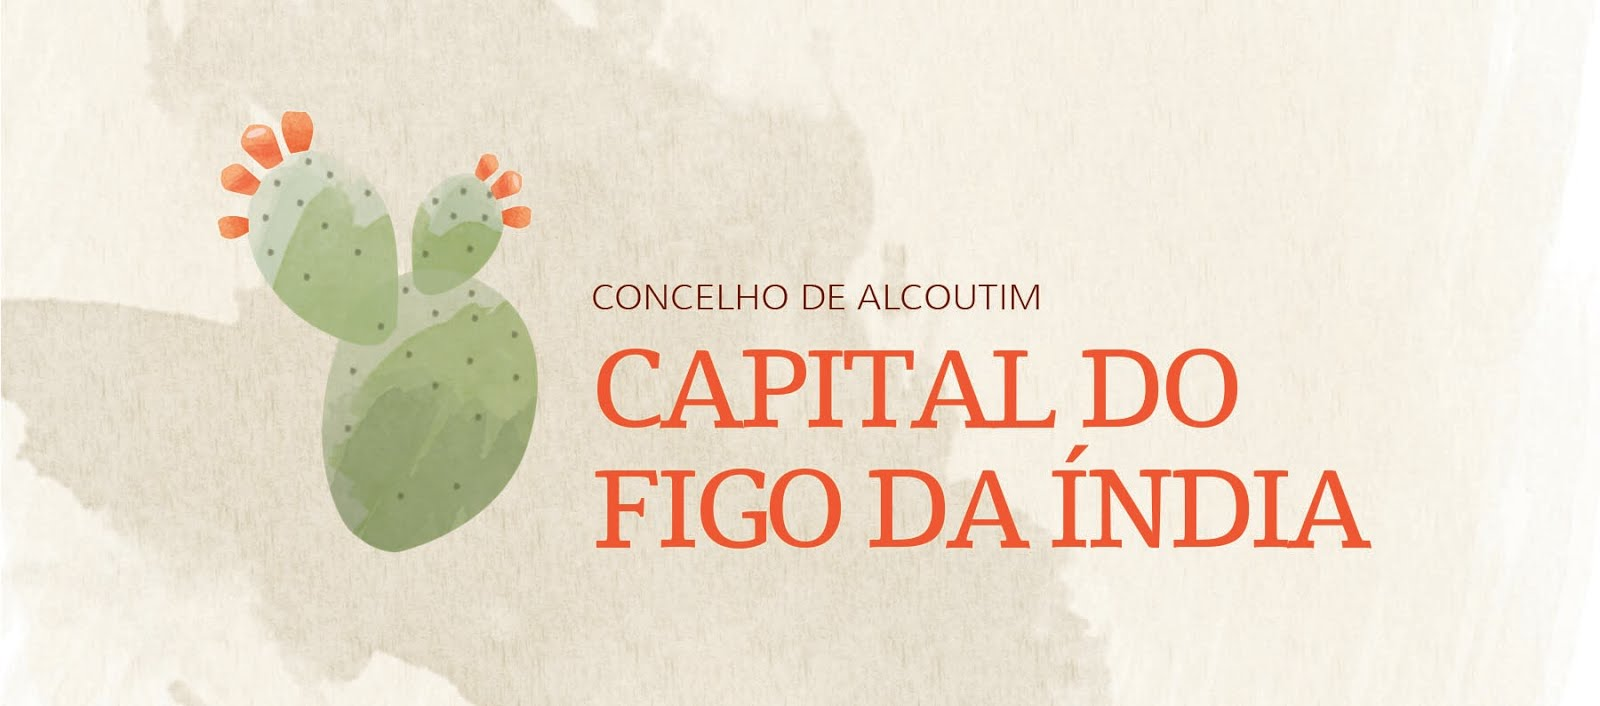 Capital do Figo da índia - Concelho de Alcoutim